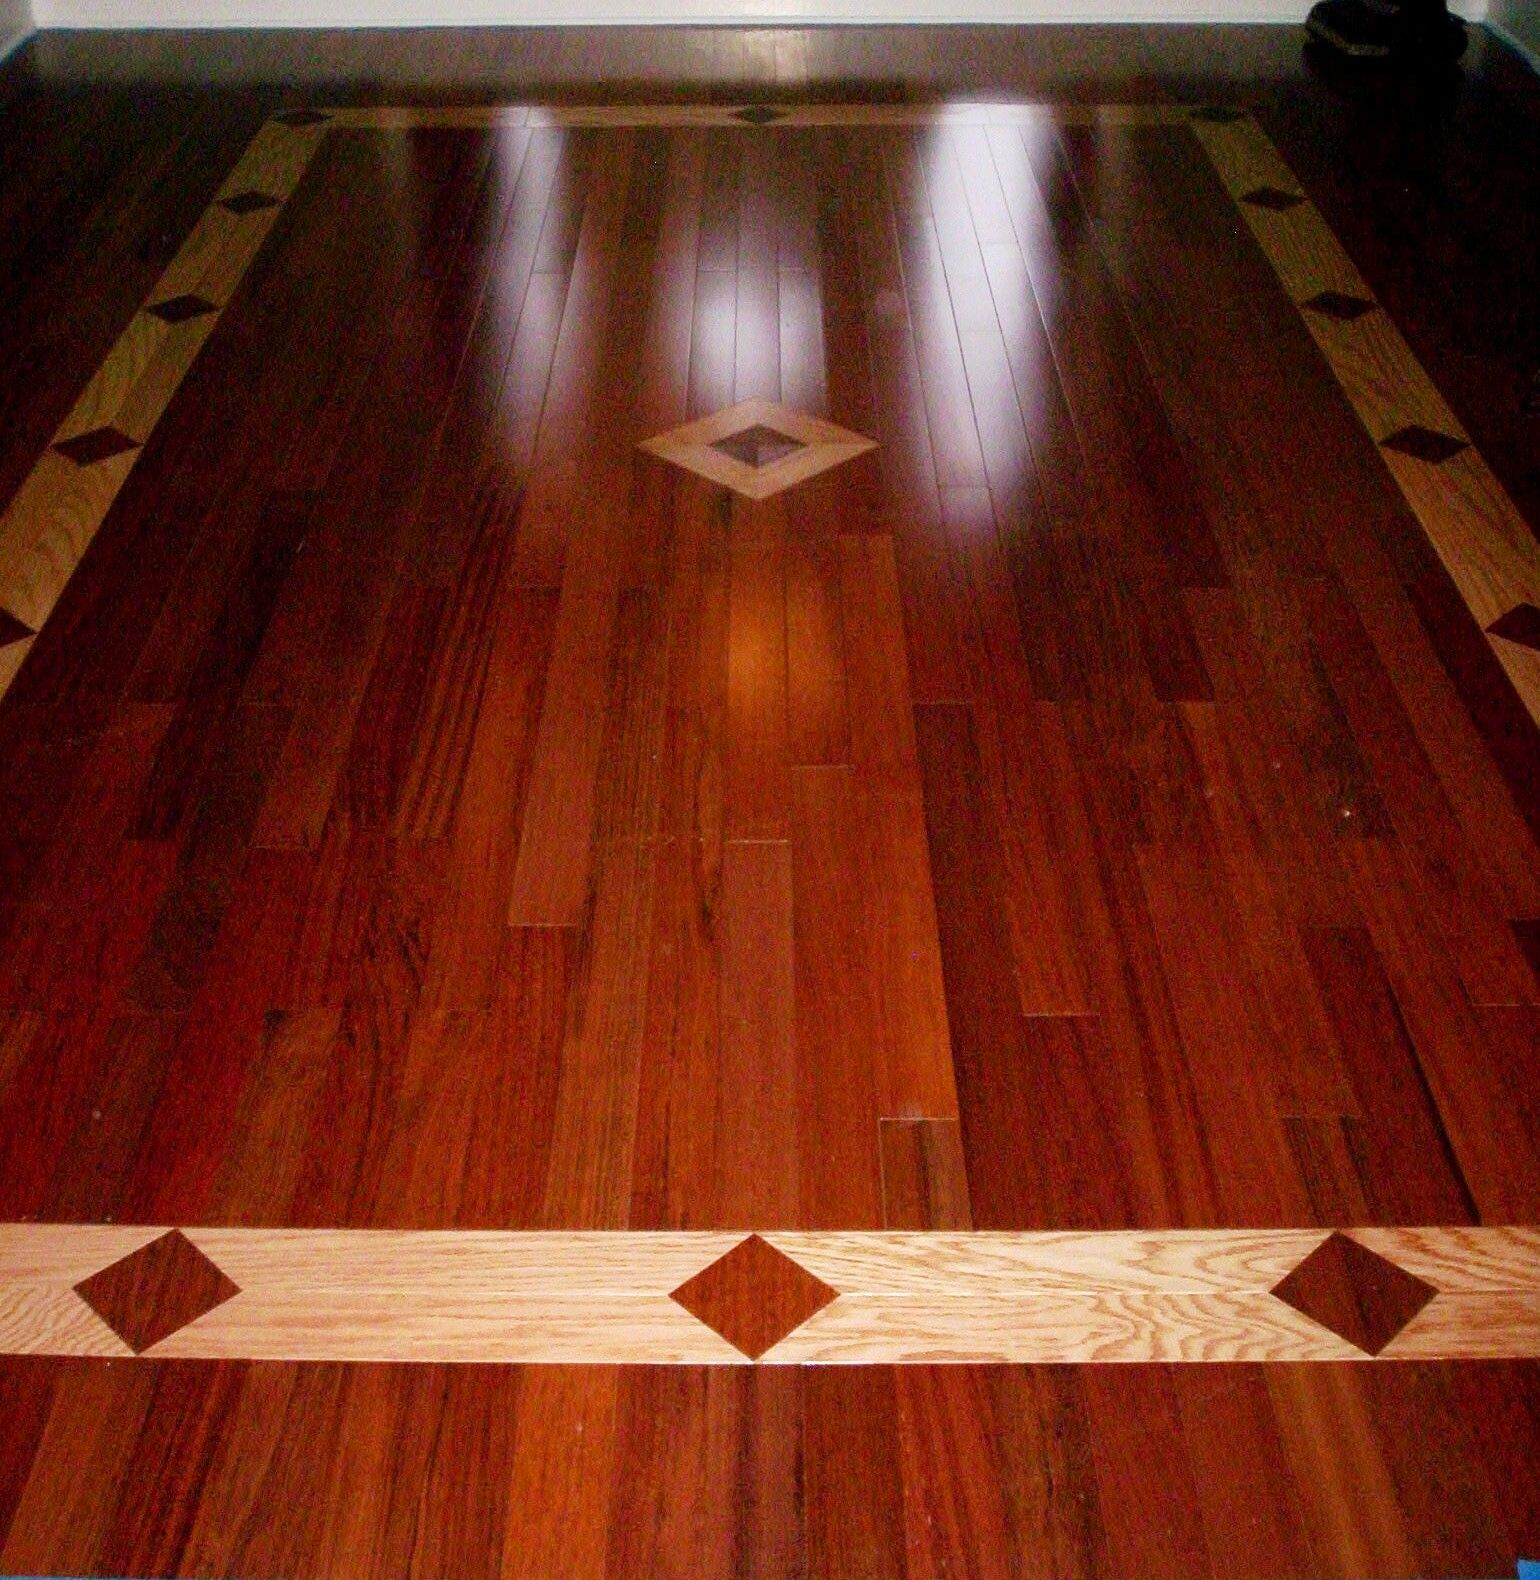 Brazilian cherry hardwood floor with a red oak inlay for Hardwood floor designs